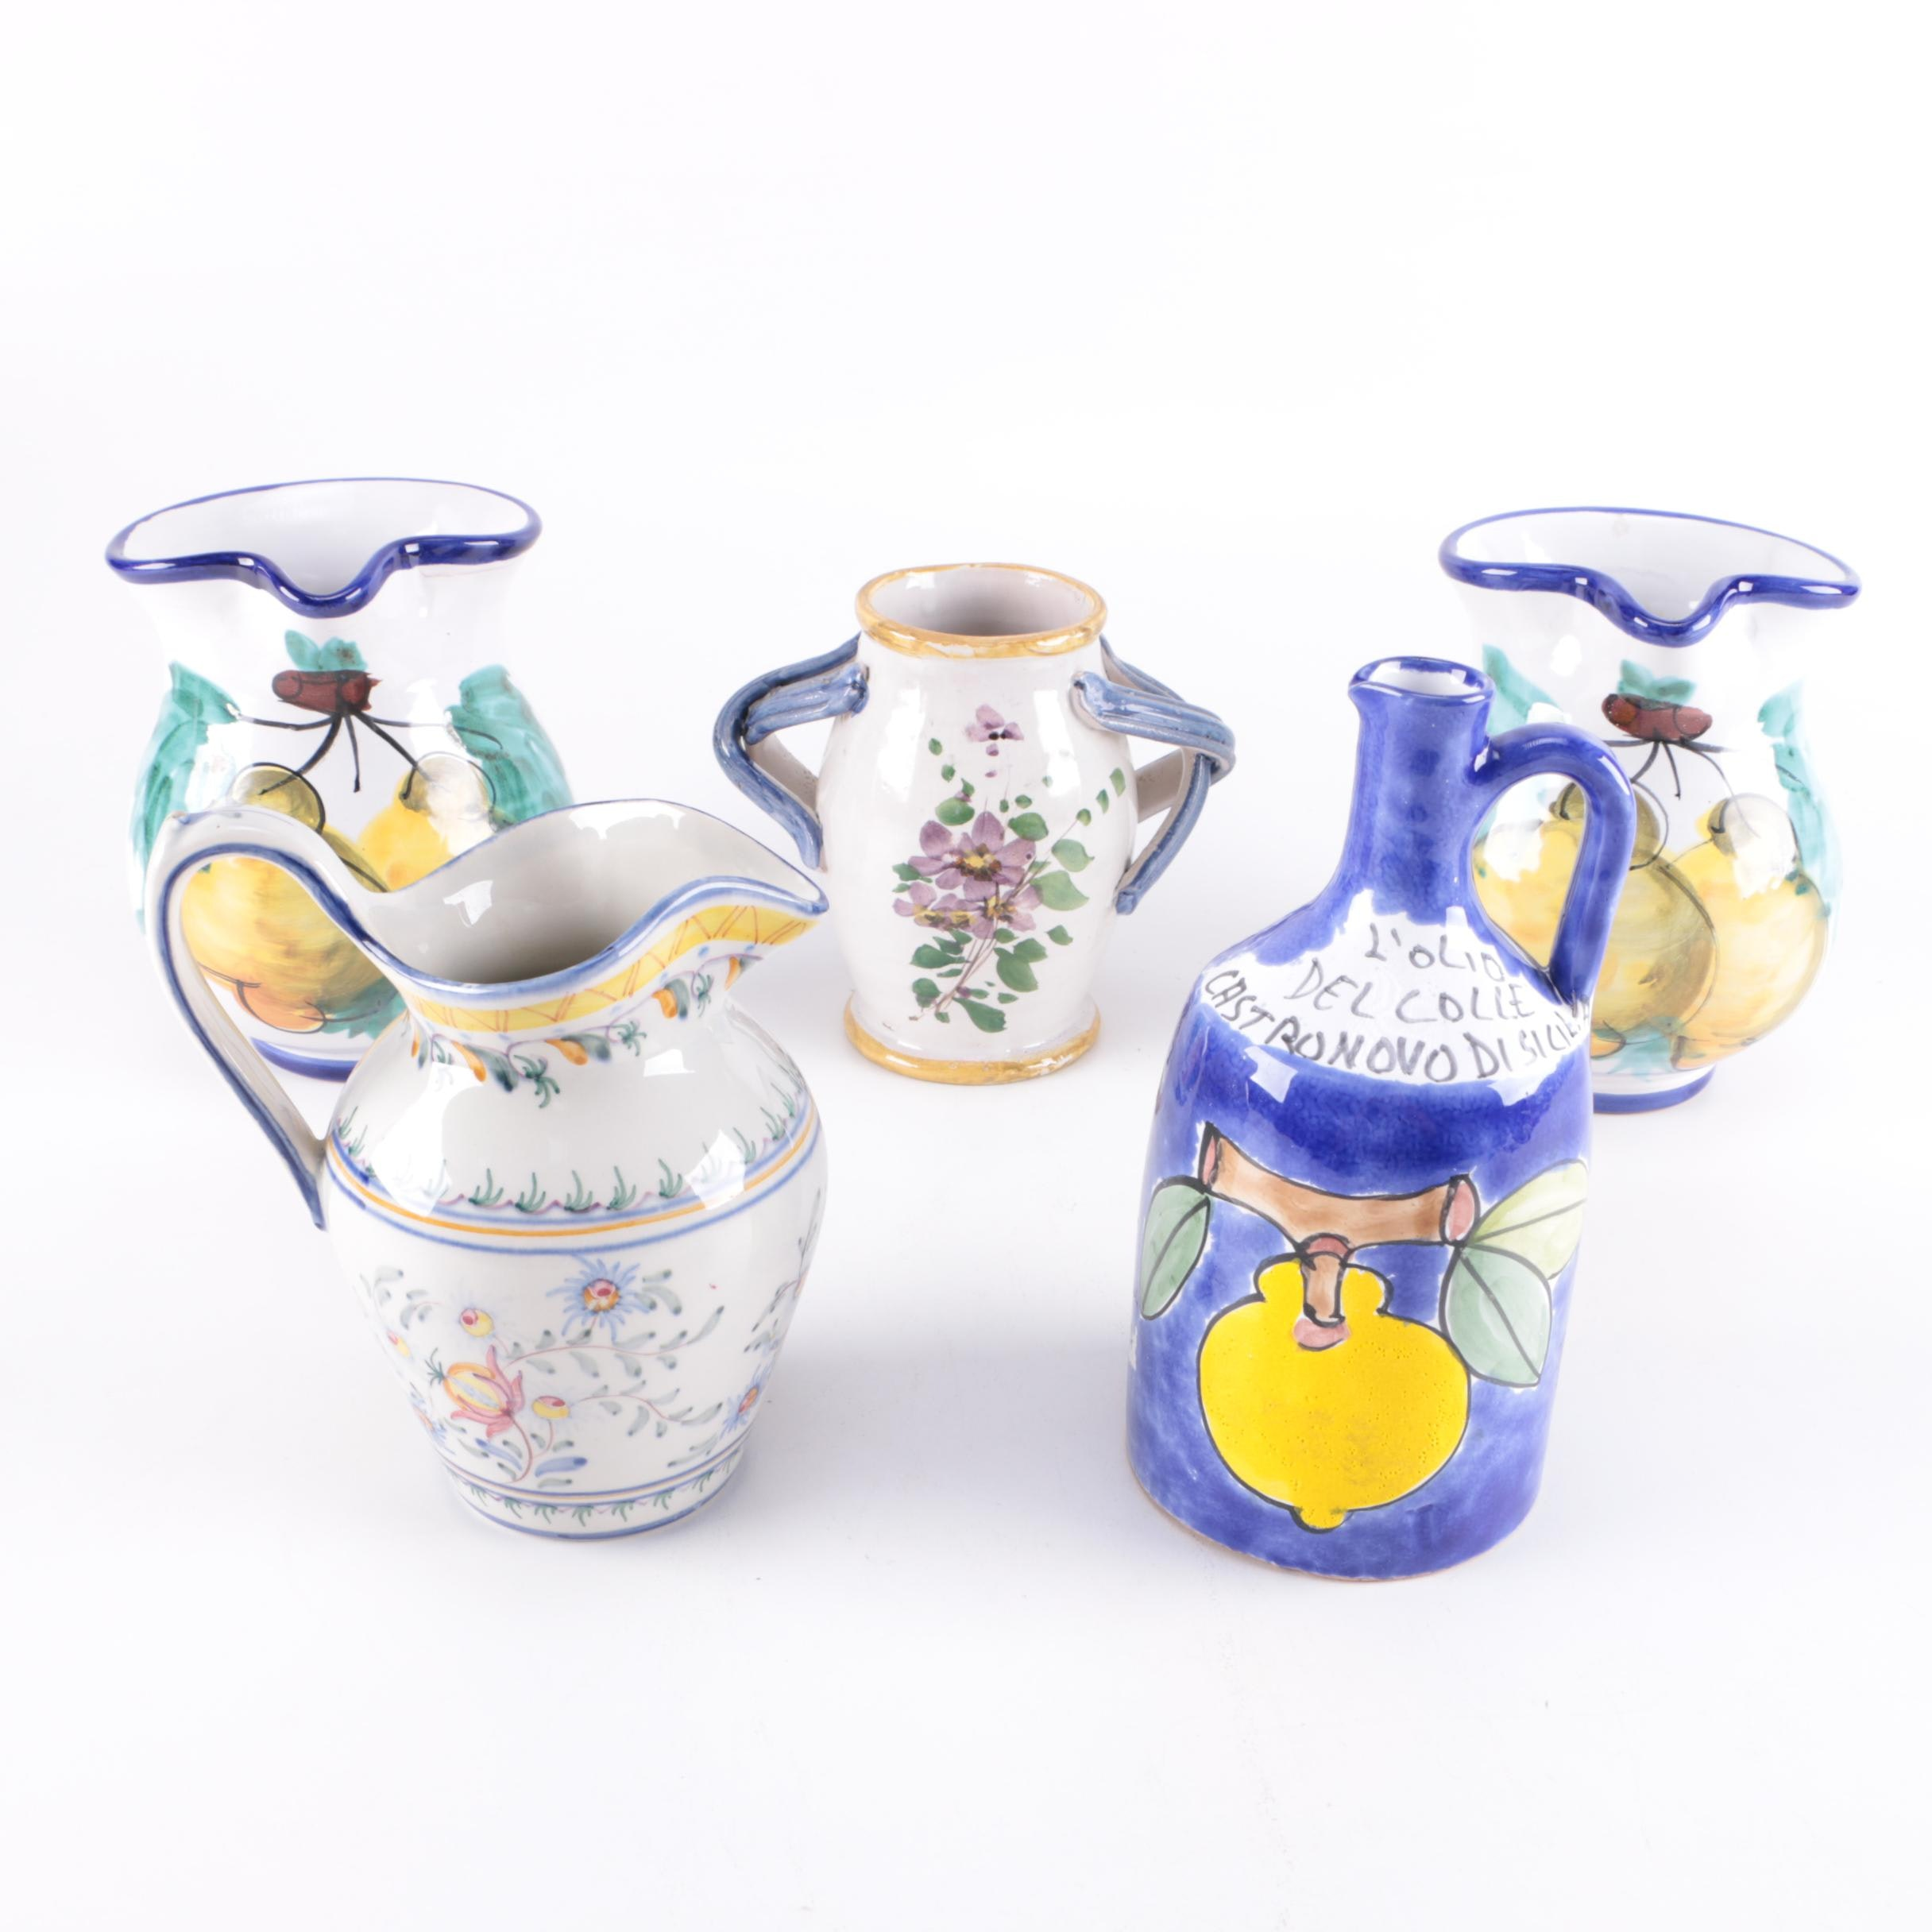 Italian and Portuguese Earthenware Hand Painted Jugs